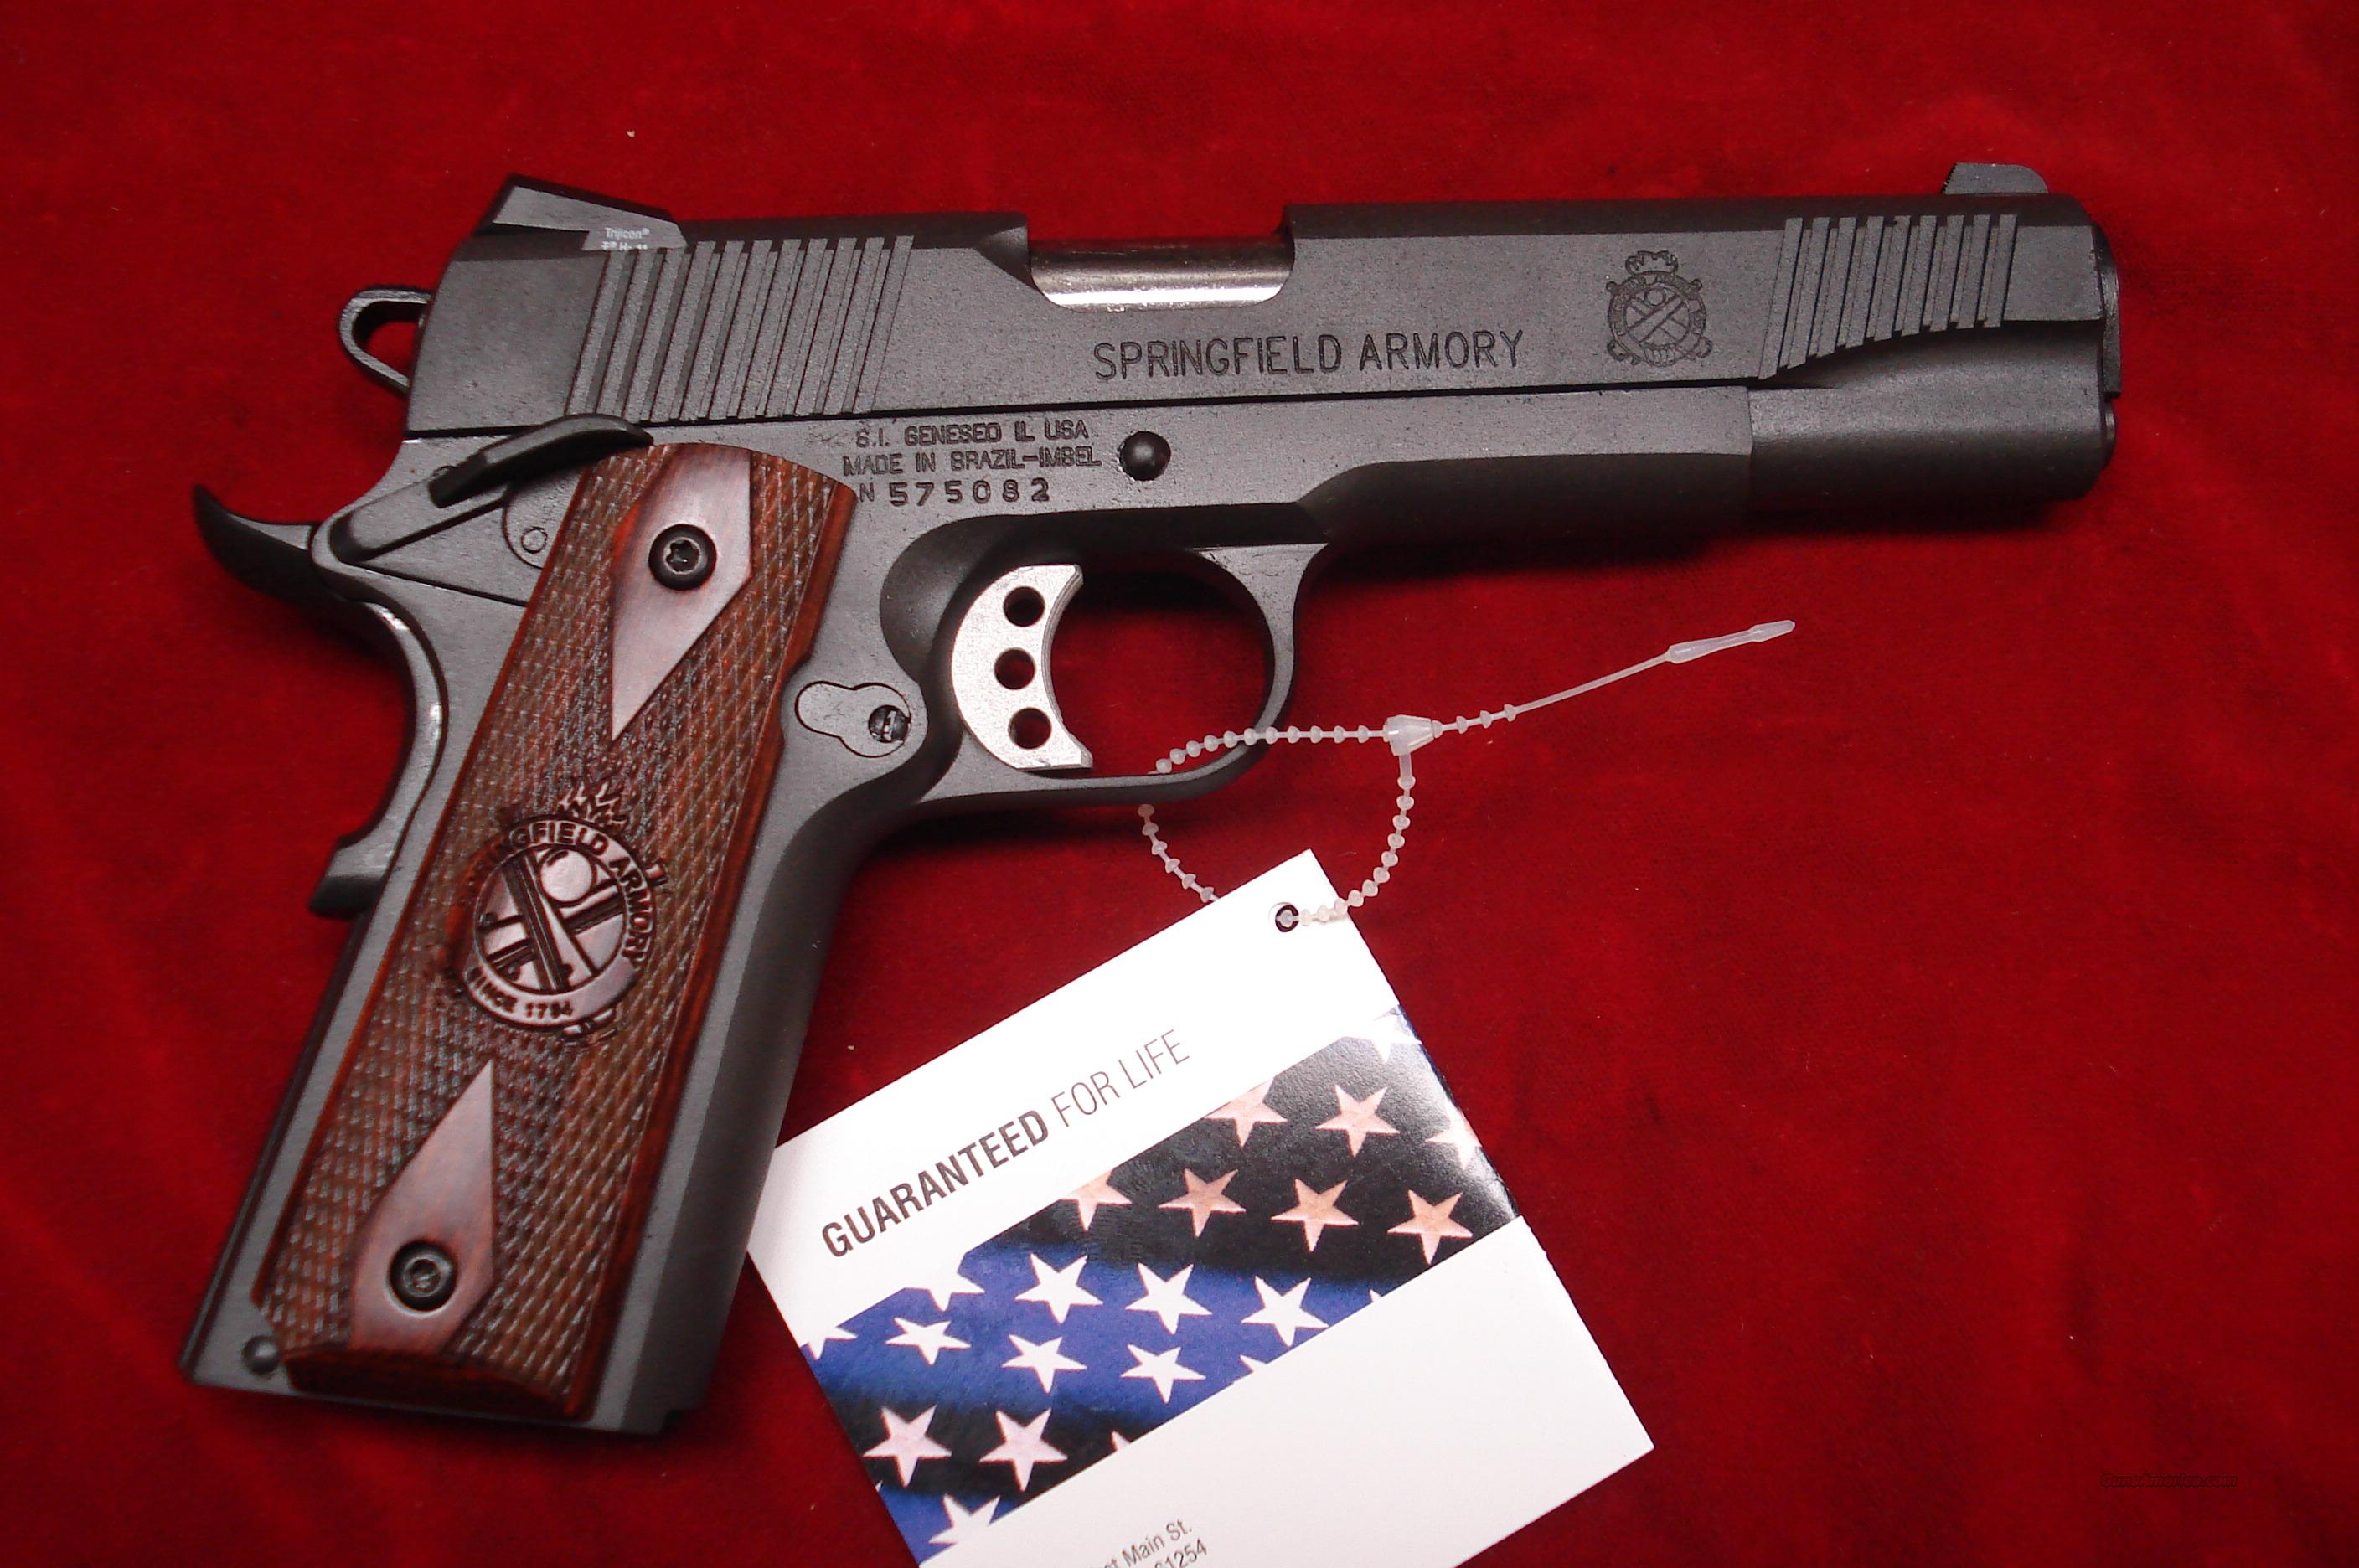 SPRINGFIELD ARMORY PARKERIZED 1911 A1 LOADED NIGHT SIGHTS (PX9109LP) NEW